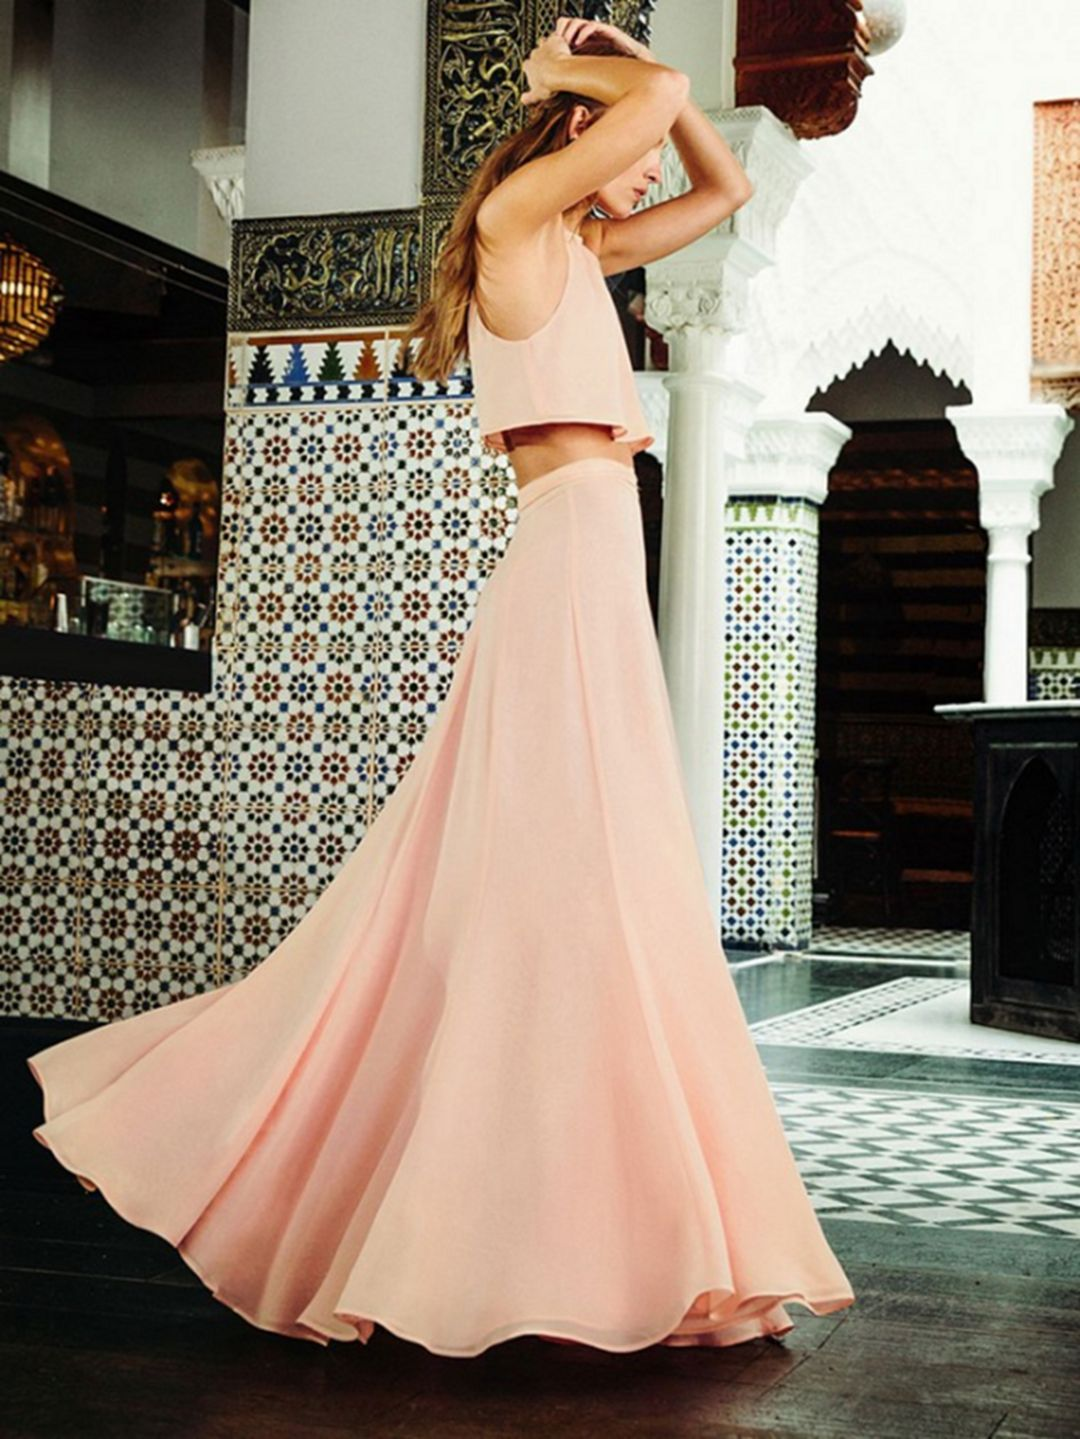 awesome guest summer wedding outfit ideas pinterest summer